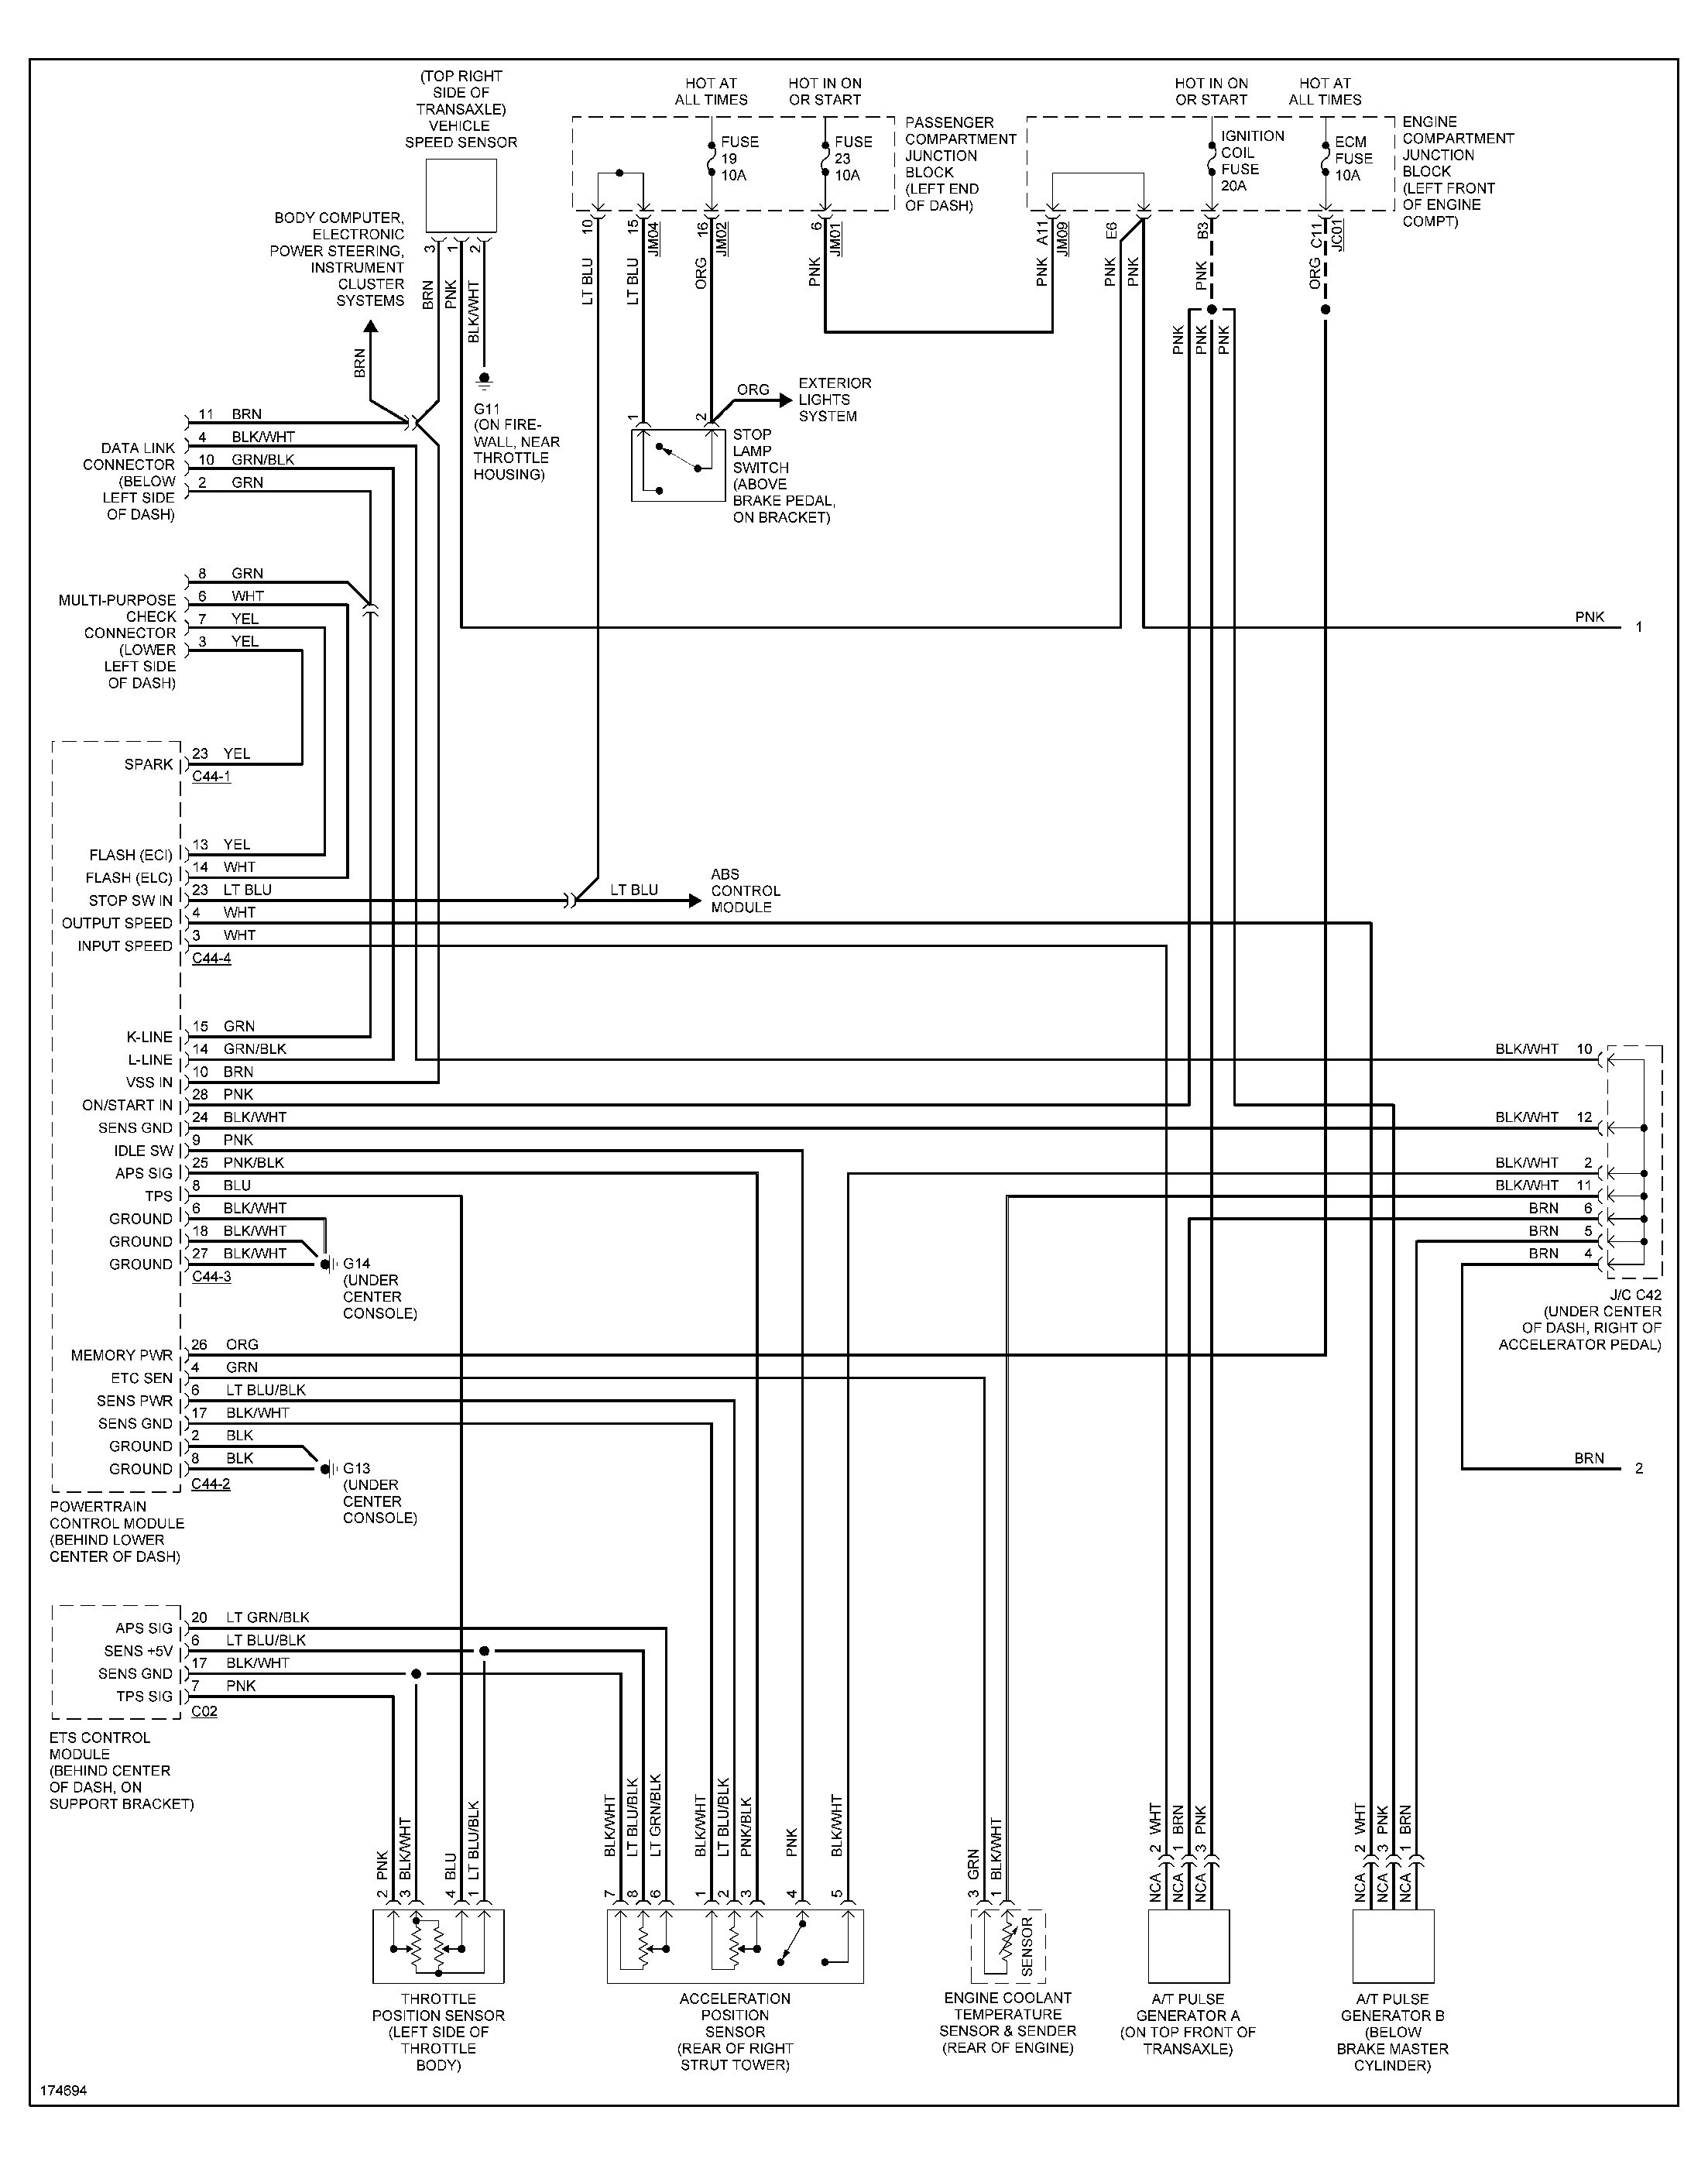 DIAGRAM] 2007 Hyundai Santa Fe Map Sensor Wiring Diagram FULL Version HD  Quality Wiring Diagram - MEDIAGRAMINDIA.LEGIODECIMA.IT | Hyundai 2 4 Engine Diagram |  | Diagram Database